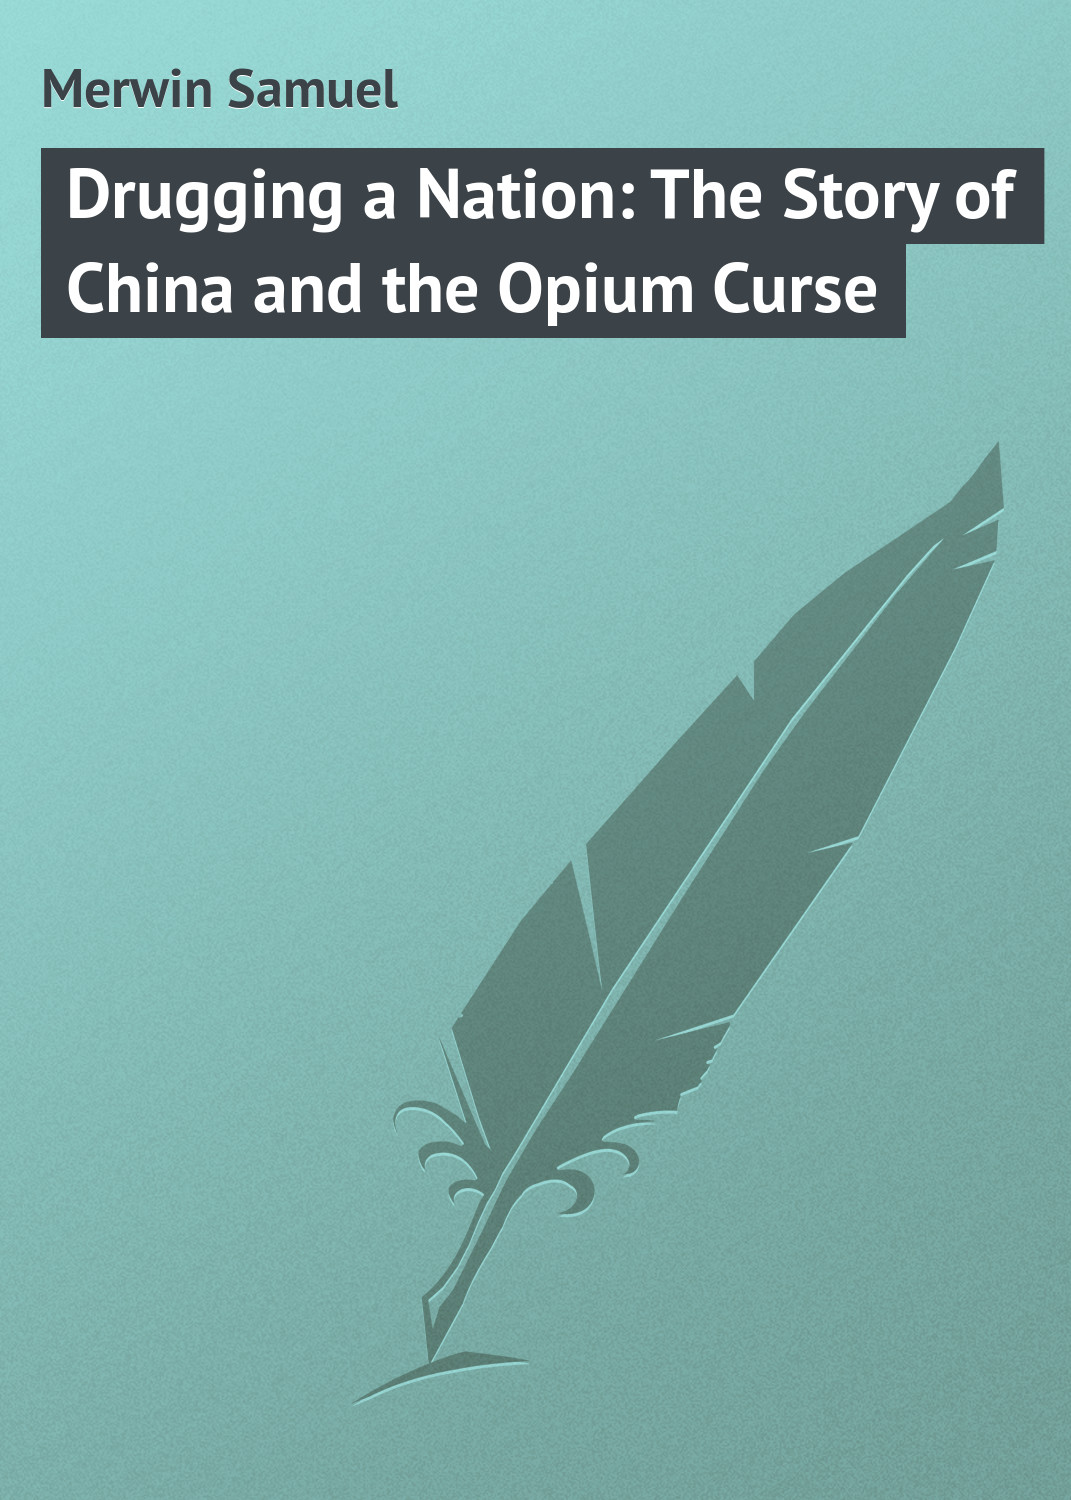 Merwin Samuel Drugging a Nation The Story of China and the Opium Curse